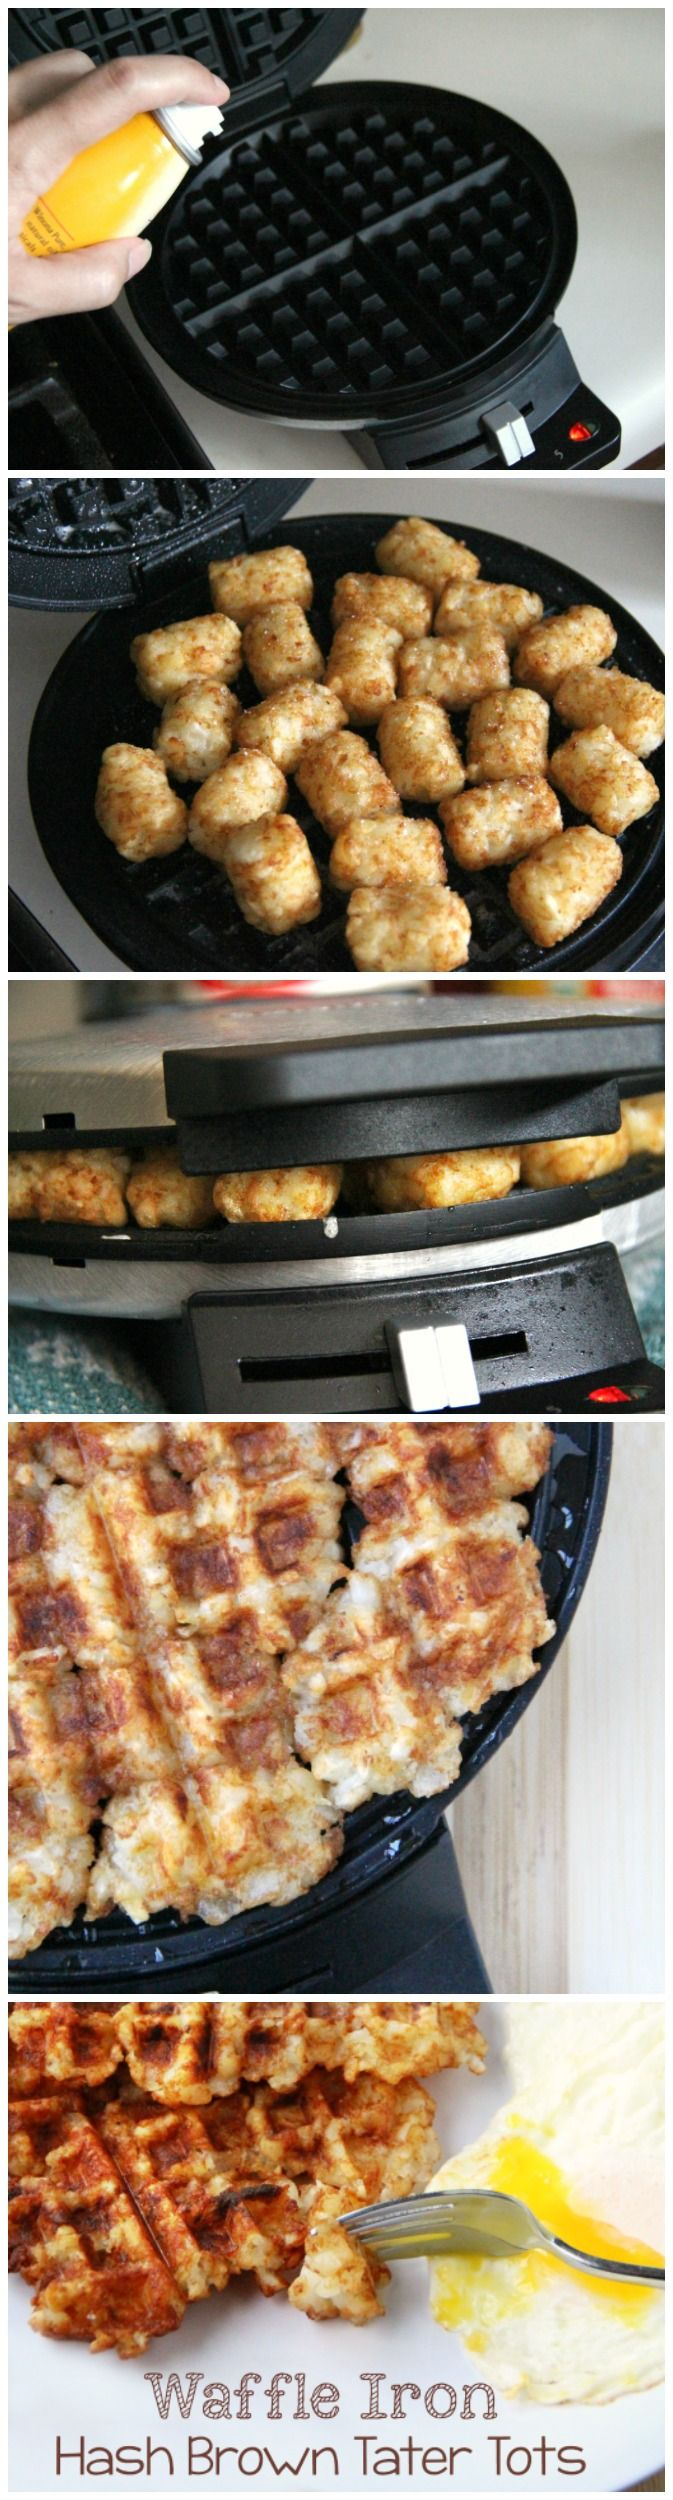 Perfect hash browns every time! Waffle Iron Hash Brown made with Tater Tots -  #BreakfastWithBevMo